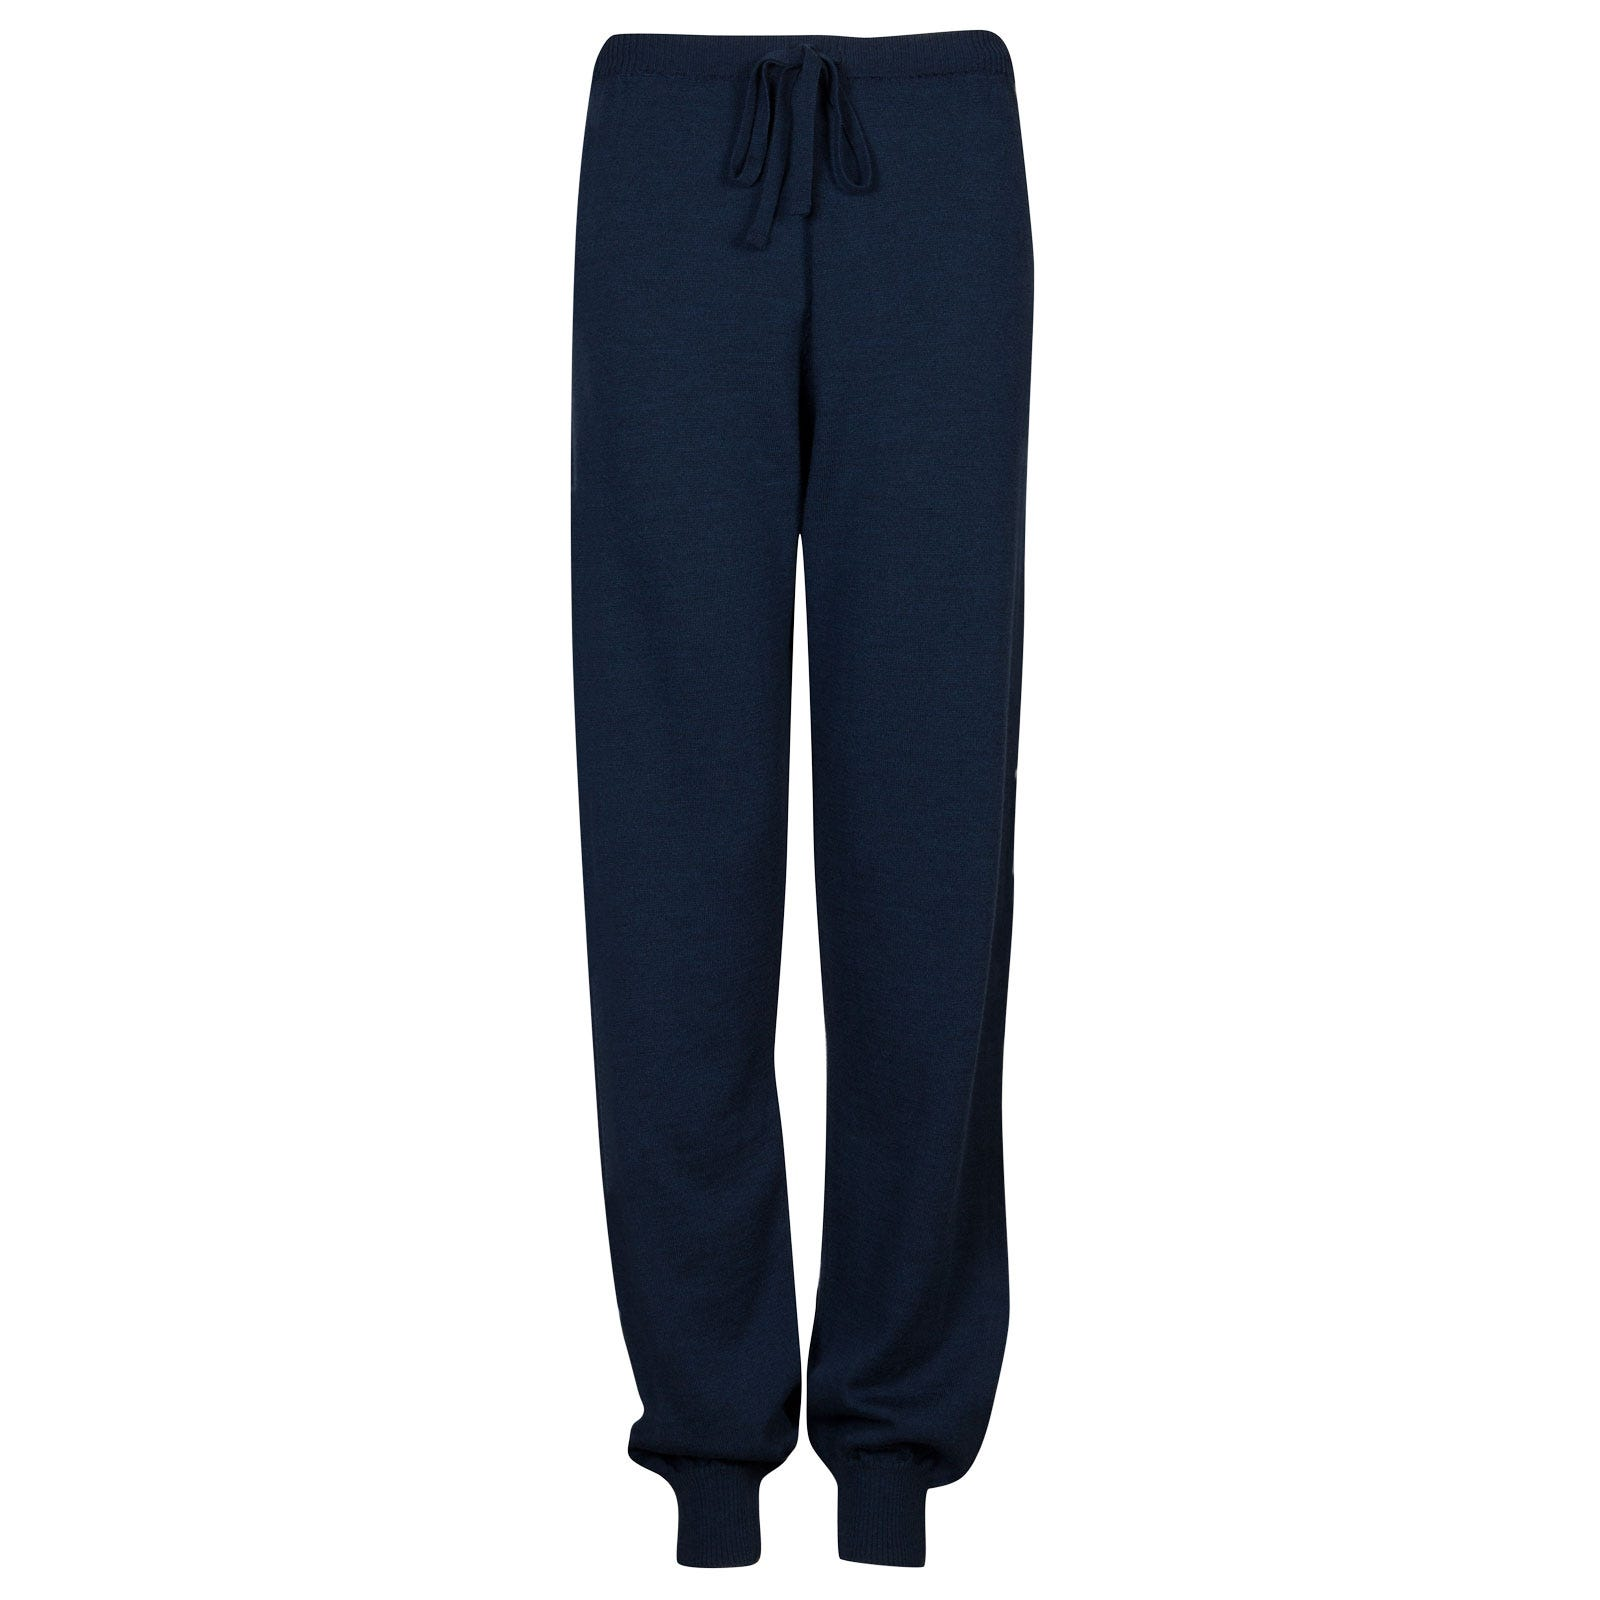 John Smedley Lock Merino Wool Trouser in Indigo-XL